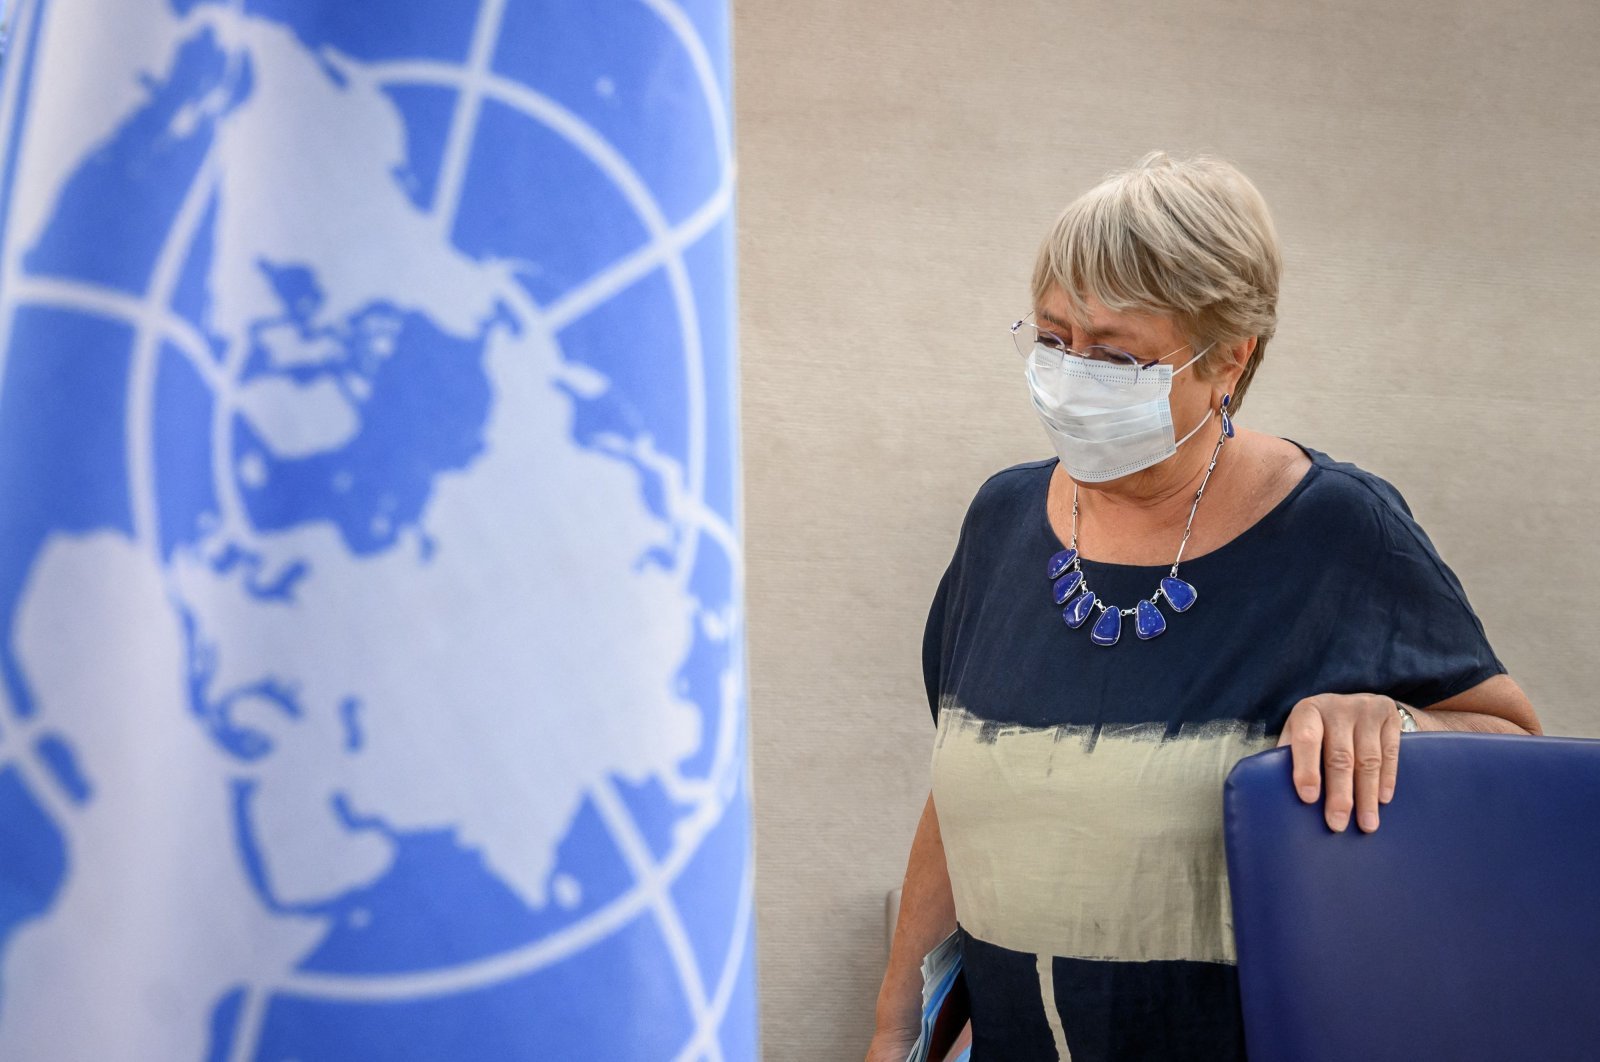 United Nations High Commissioner for Human Rights Michelle Bachelet leaves after delivering a speech at the opening of a session of the U.N. Human Rights Council in Geneva, Switzerland, Sept. 13, 2021. (AFP Photo)